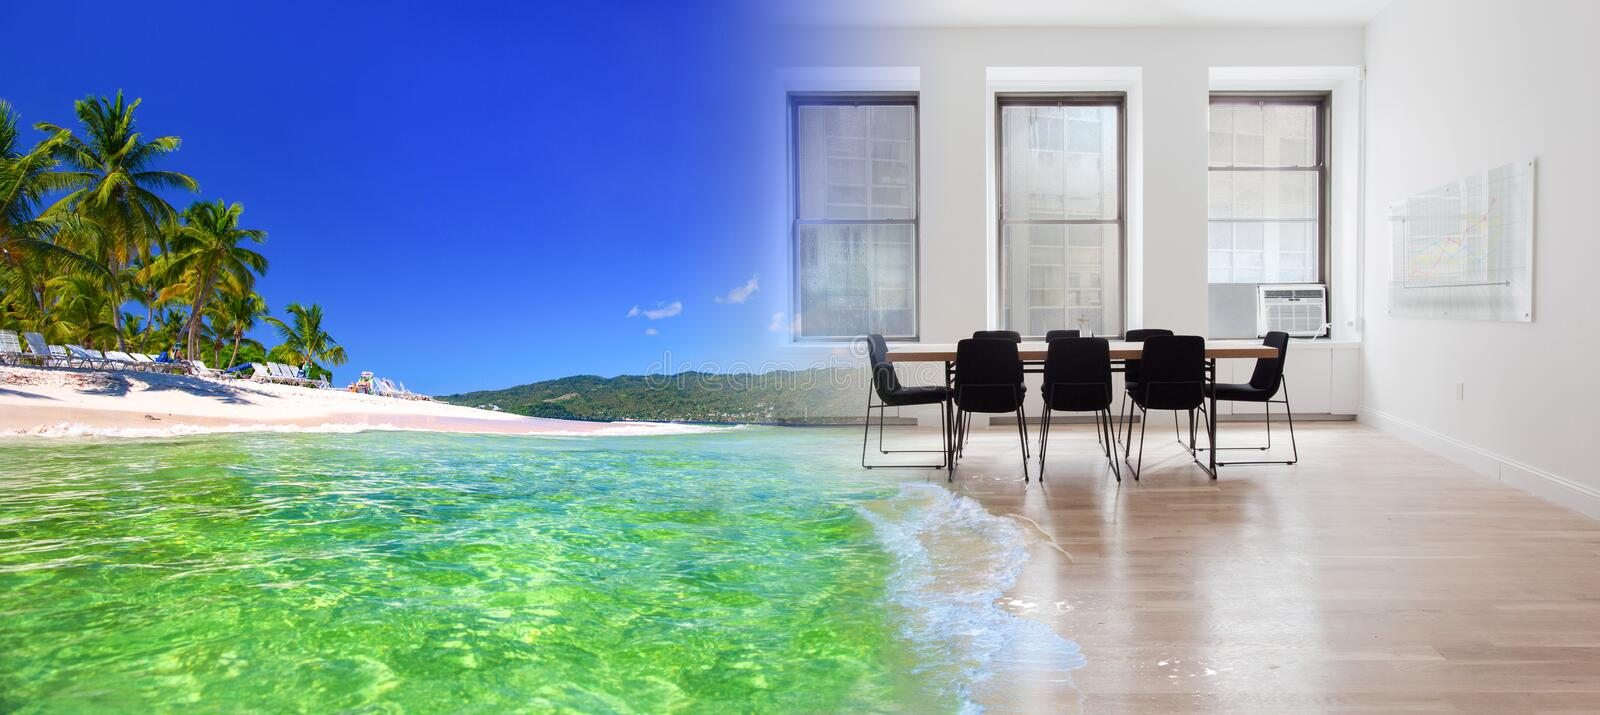 Surrealistic collage of the tropical sea and office space royalty free stock photos